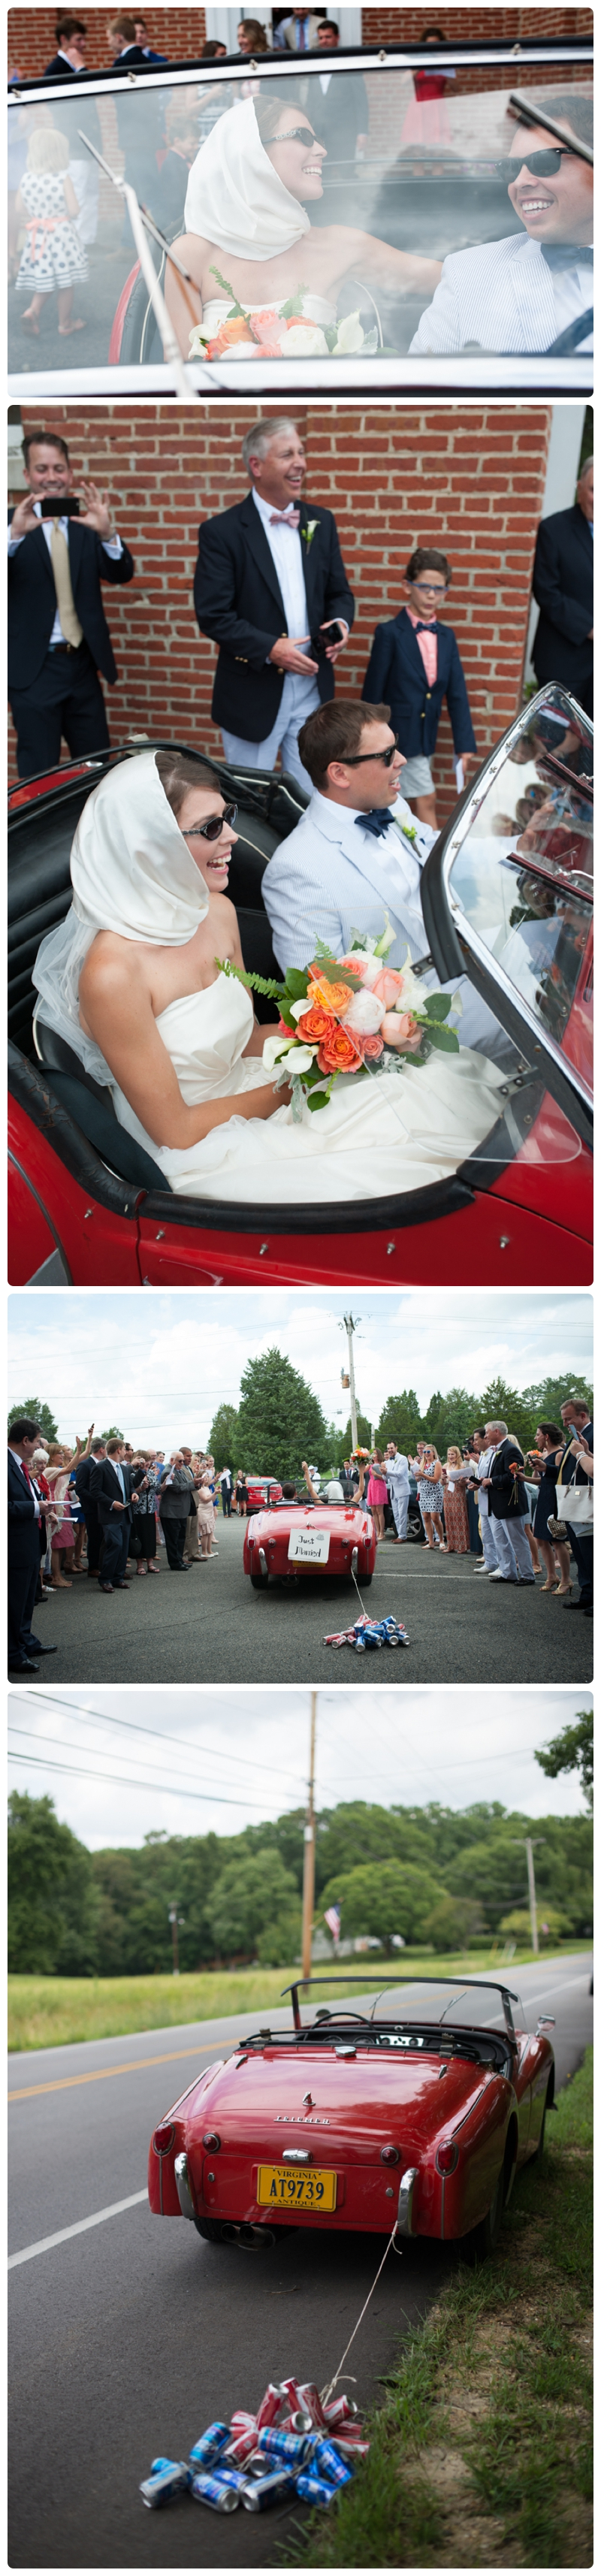 Fourth of July Wedding on the Potmac by Rachael Foster Photography_0025.jpg